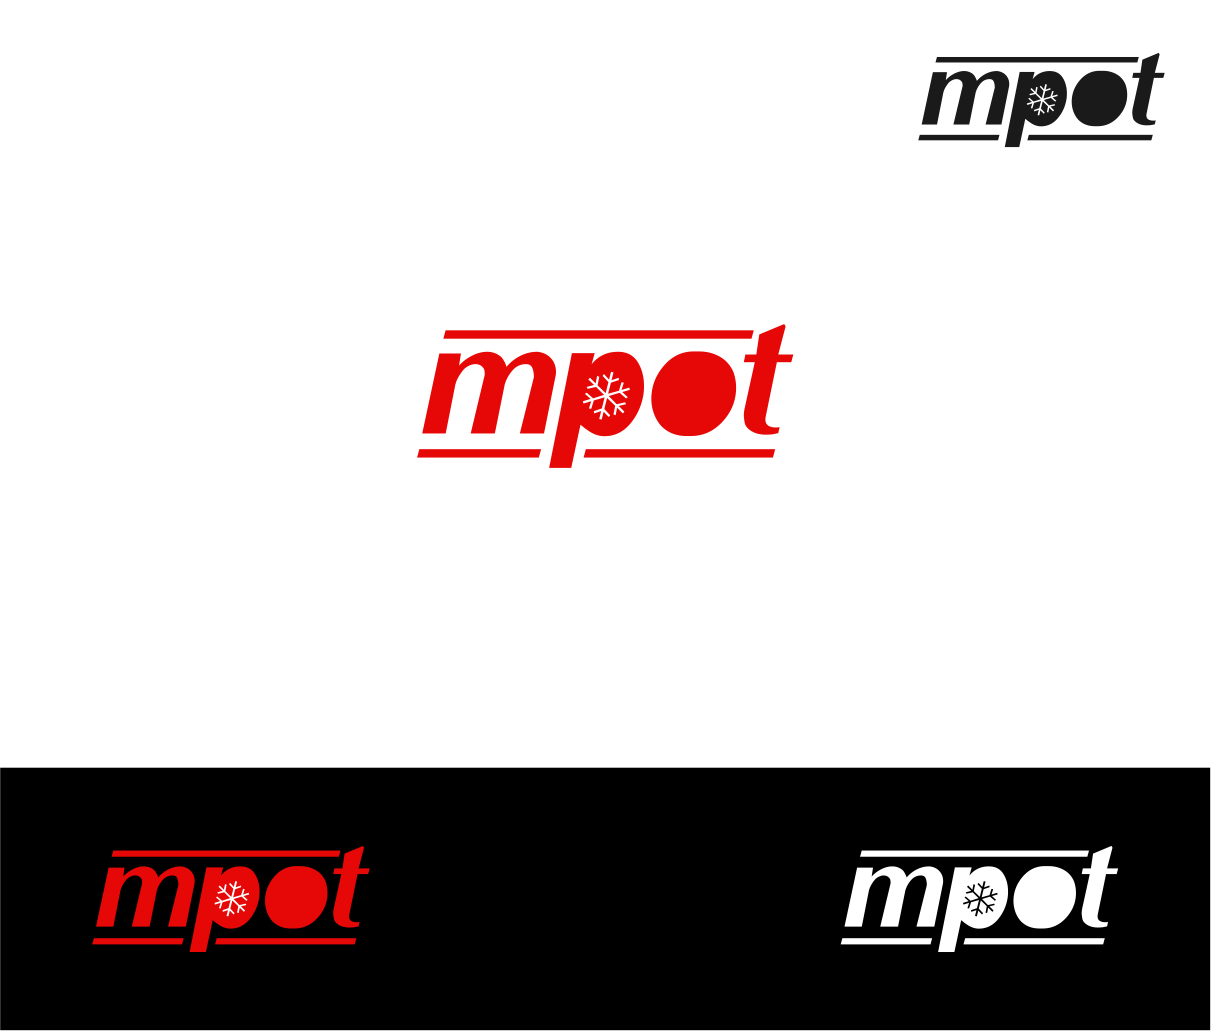 Logo Design by haidu - Entry No. 150 in the Logo Design Contest Mpot inc  Logo Design.